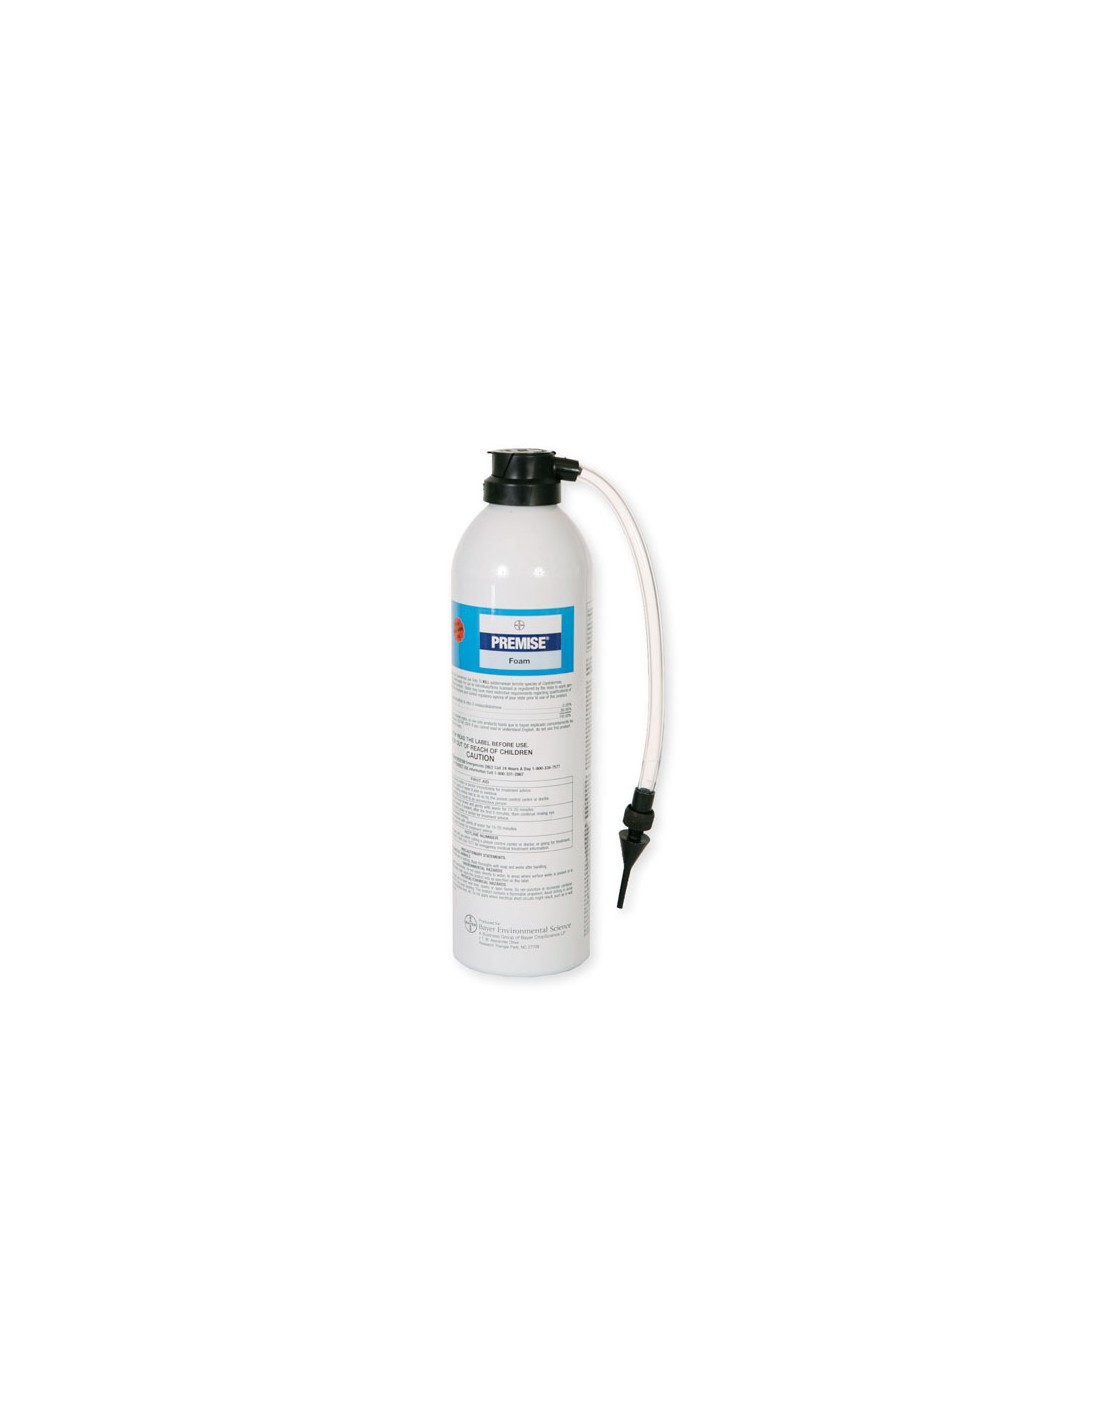 can i use this product to treat dry wood termites?